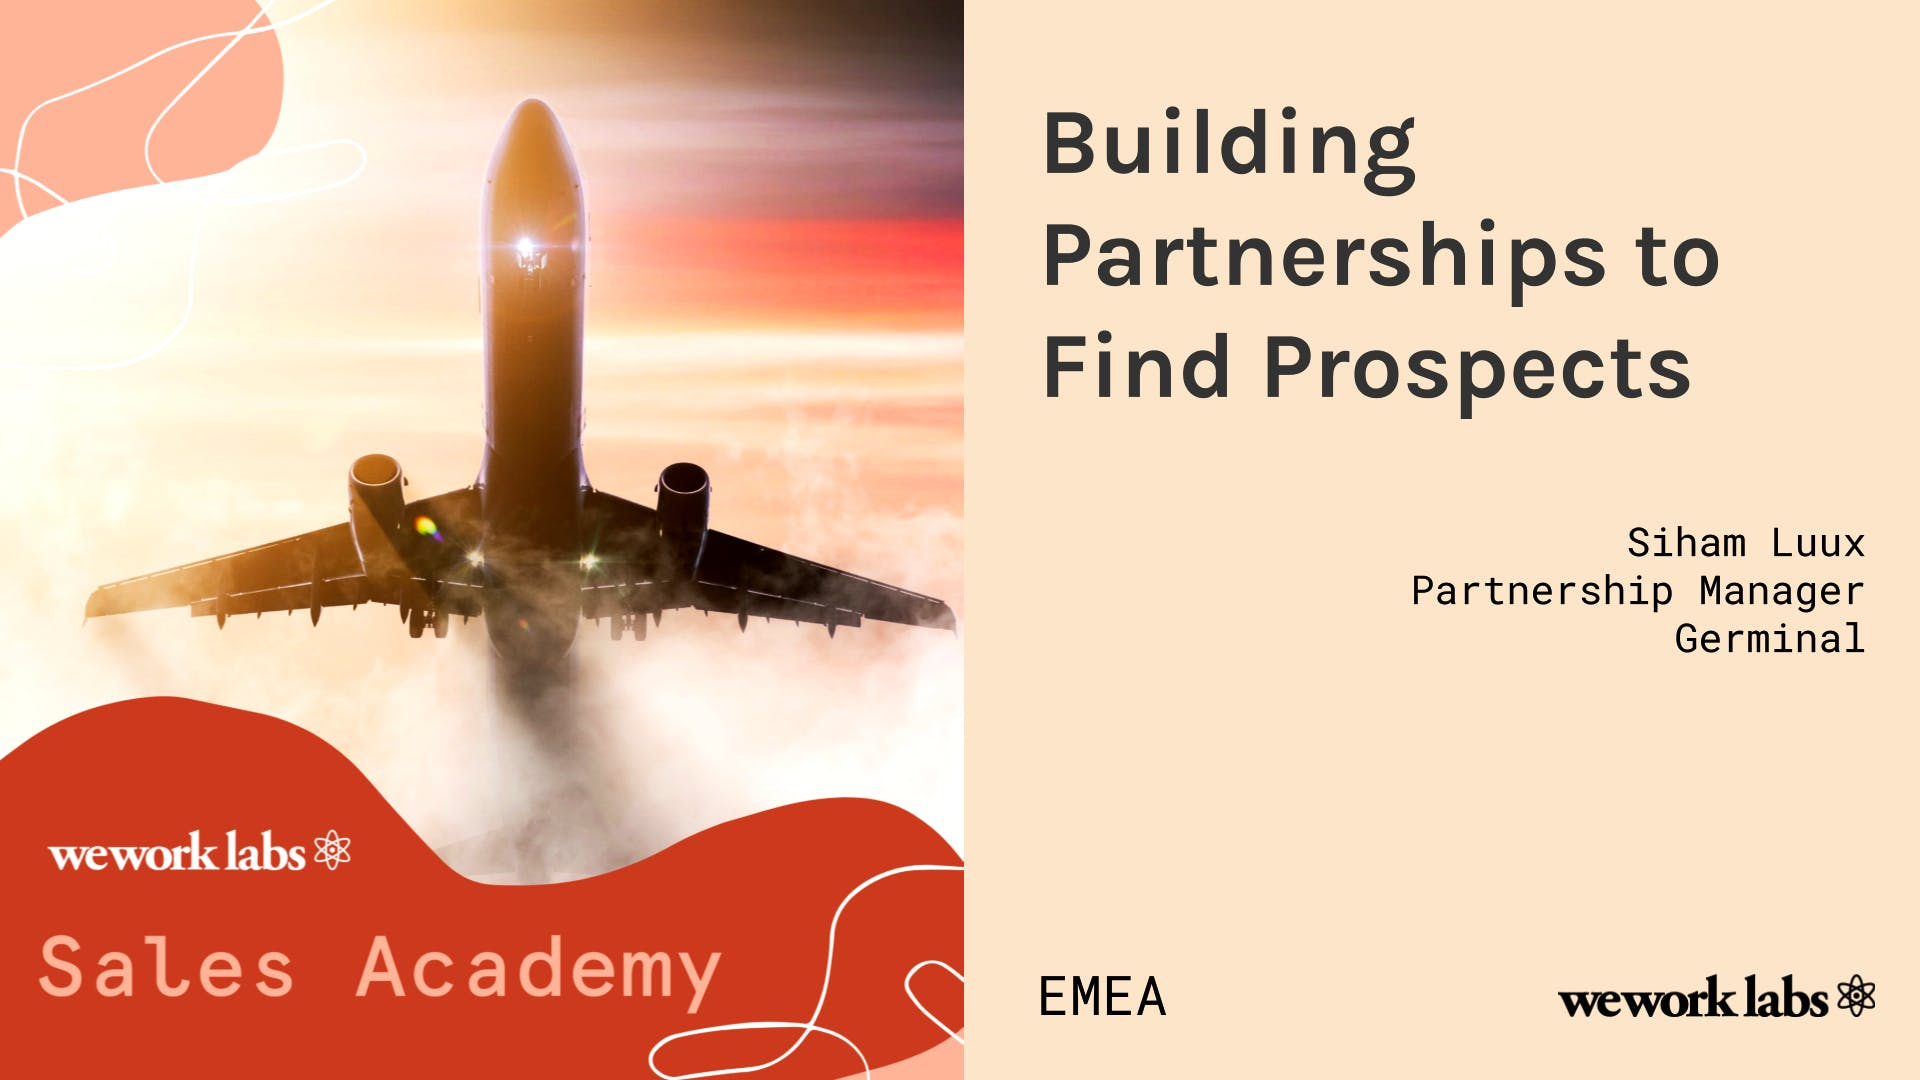 Sales Academy (EMEA): Building Partnerships to Find Prospects